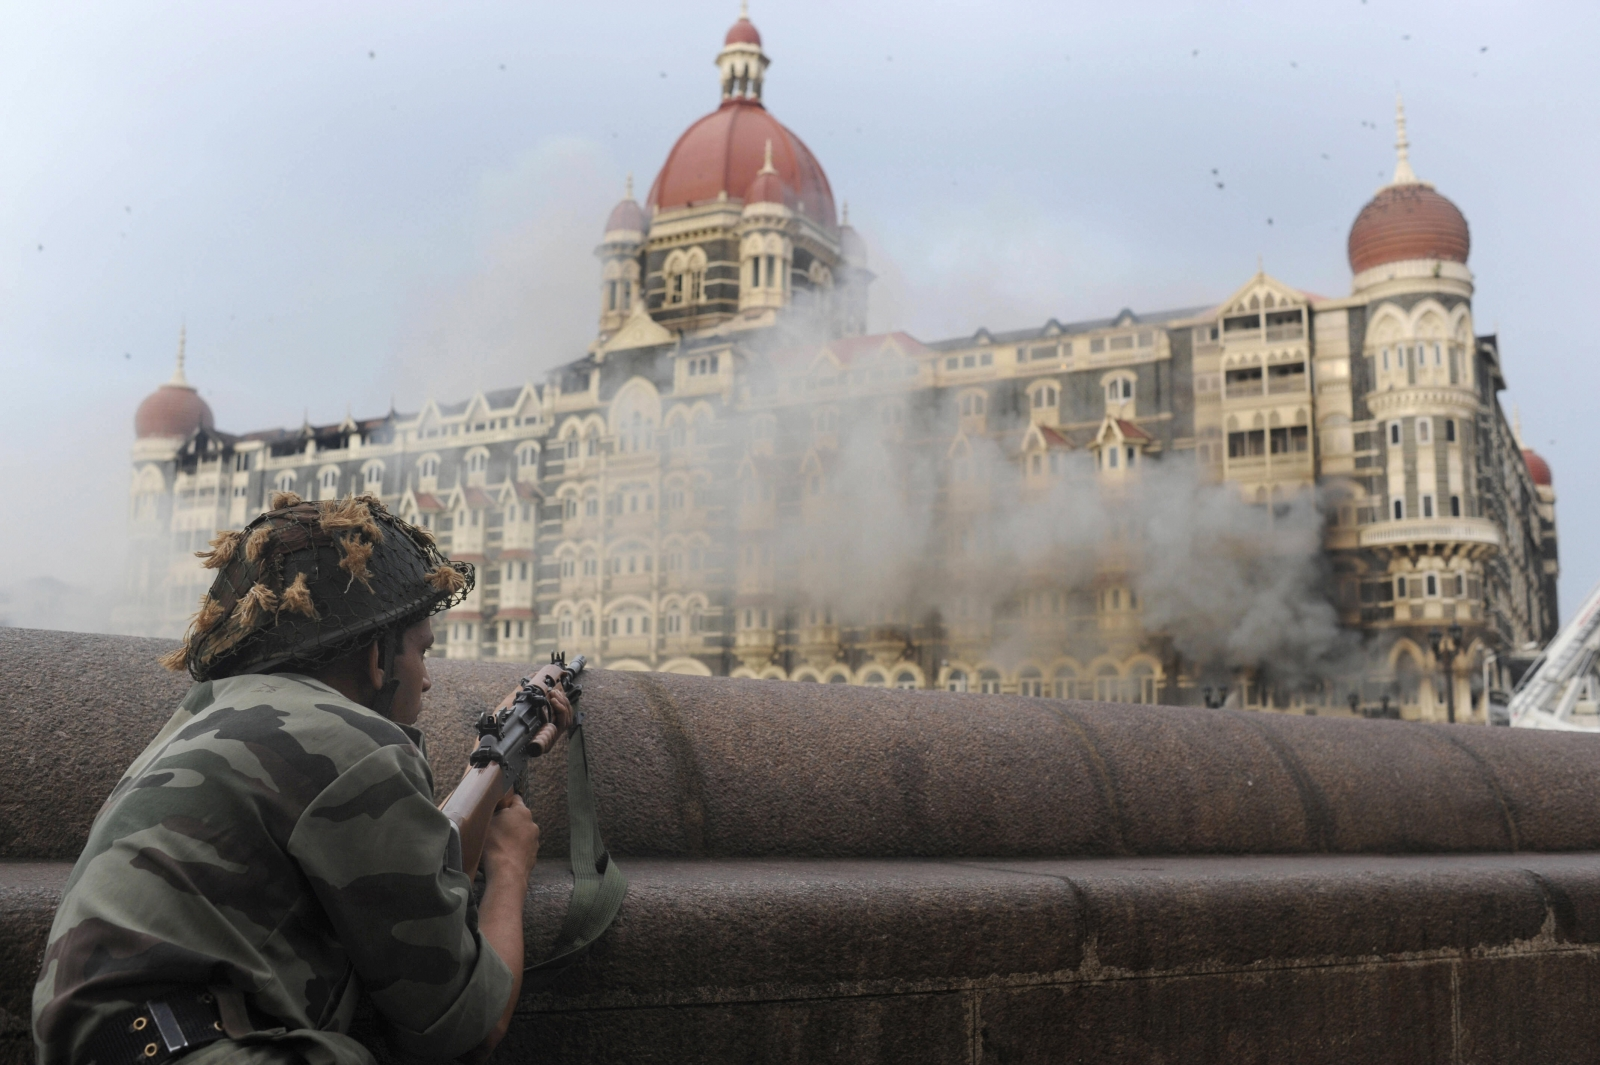 166 people were killed in the 2008terrorattacs